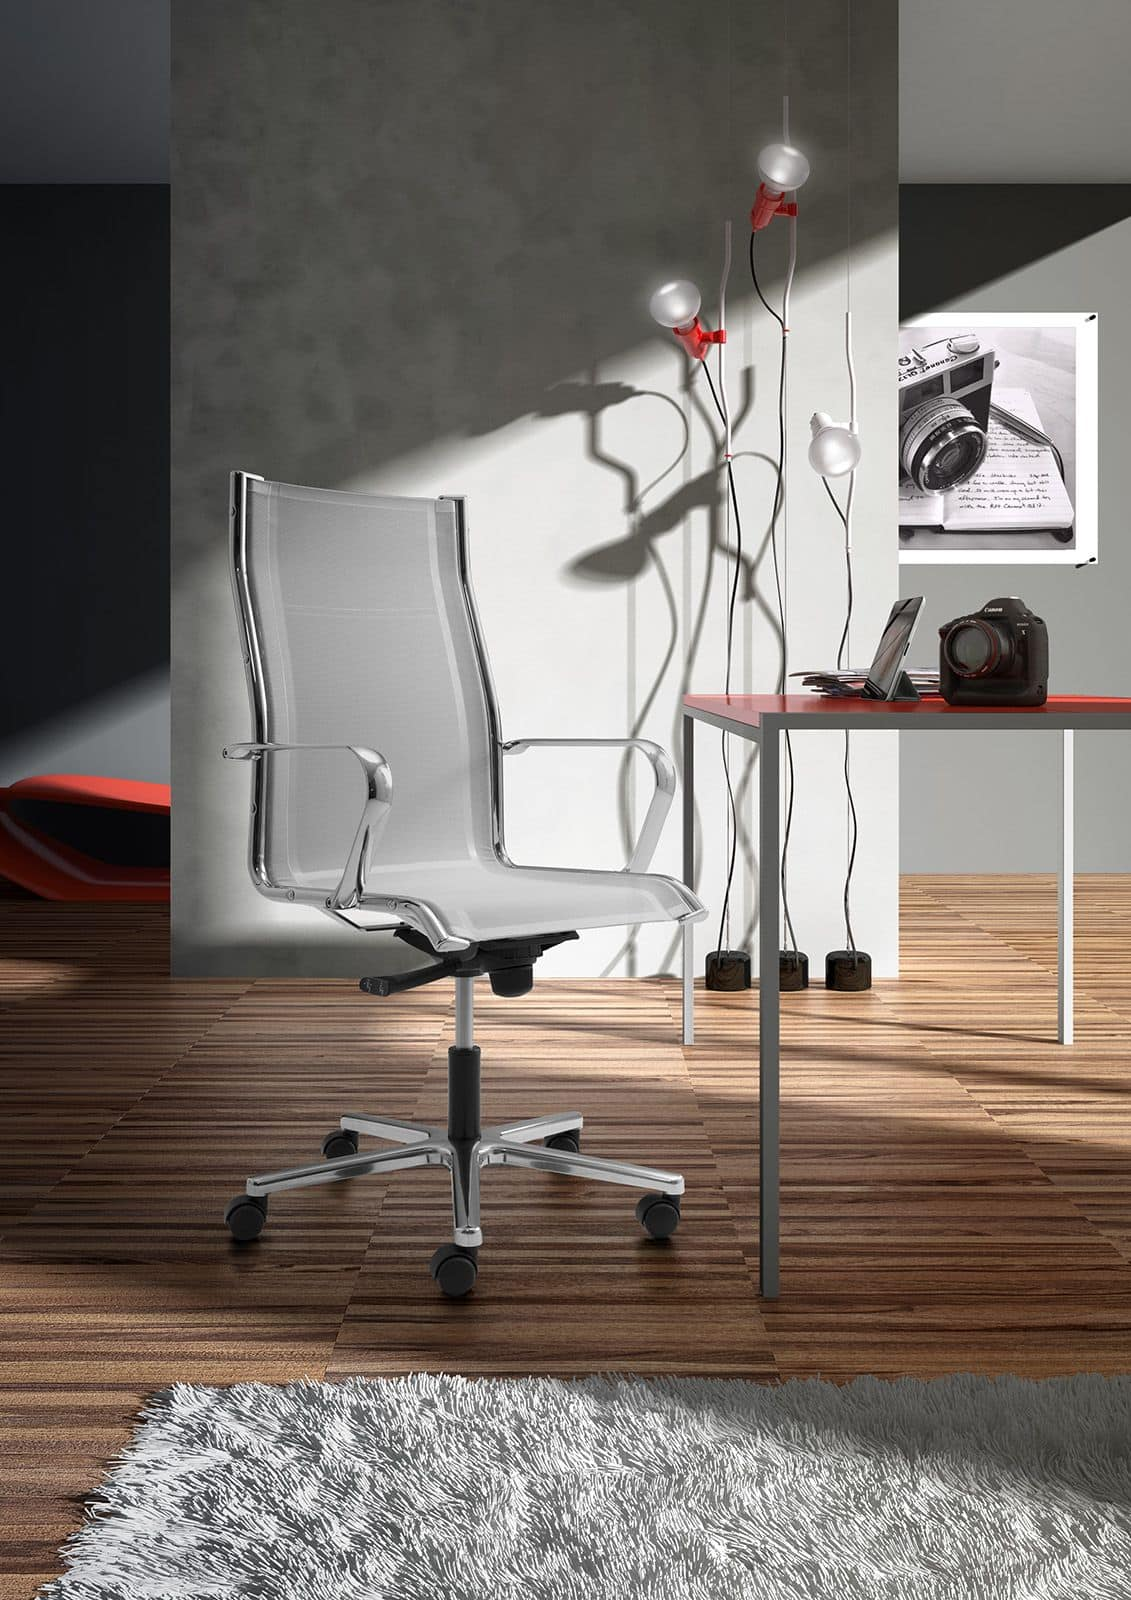 Origami RE high executive 70211, Office chair with seat and backrest made of mesh